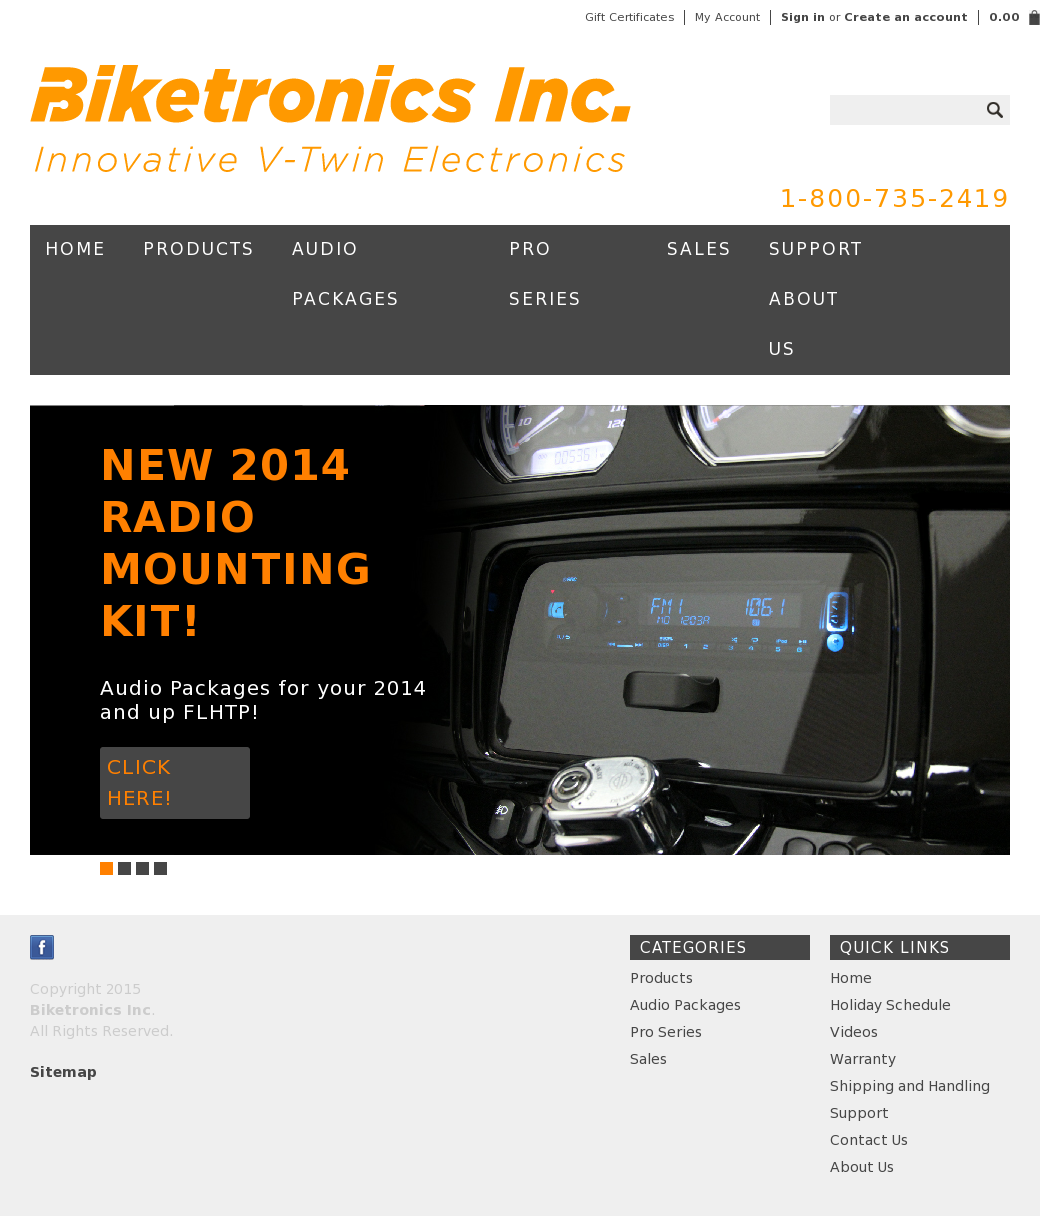 Biketronics Competitors, Revenue and Employees - Owler